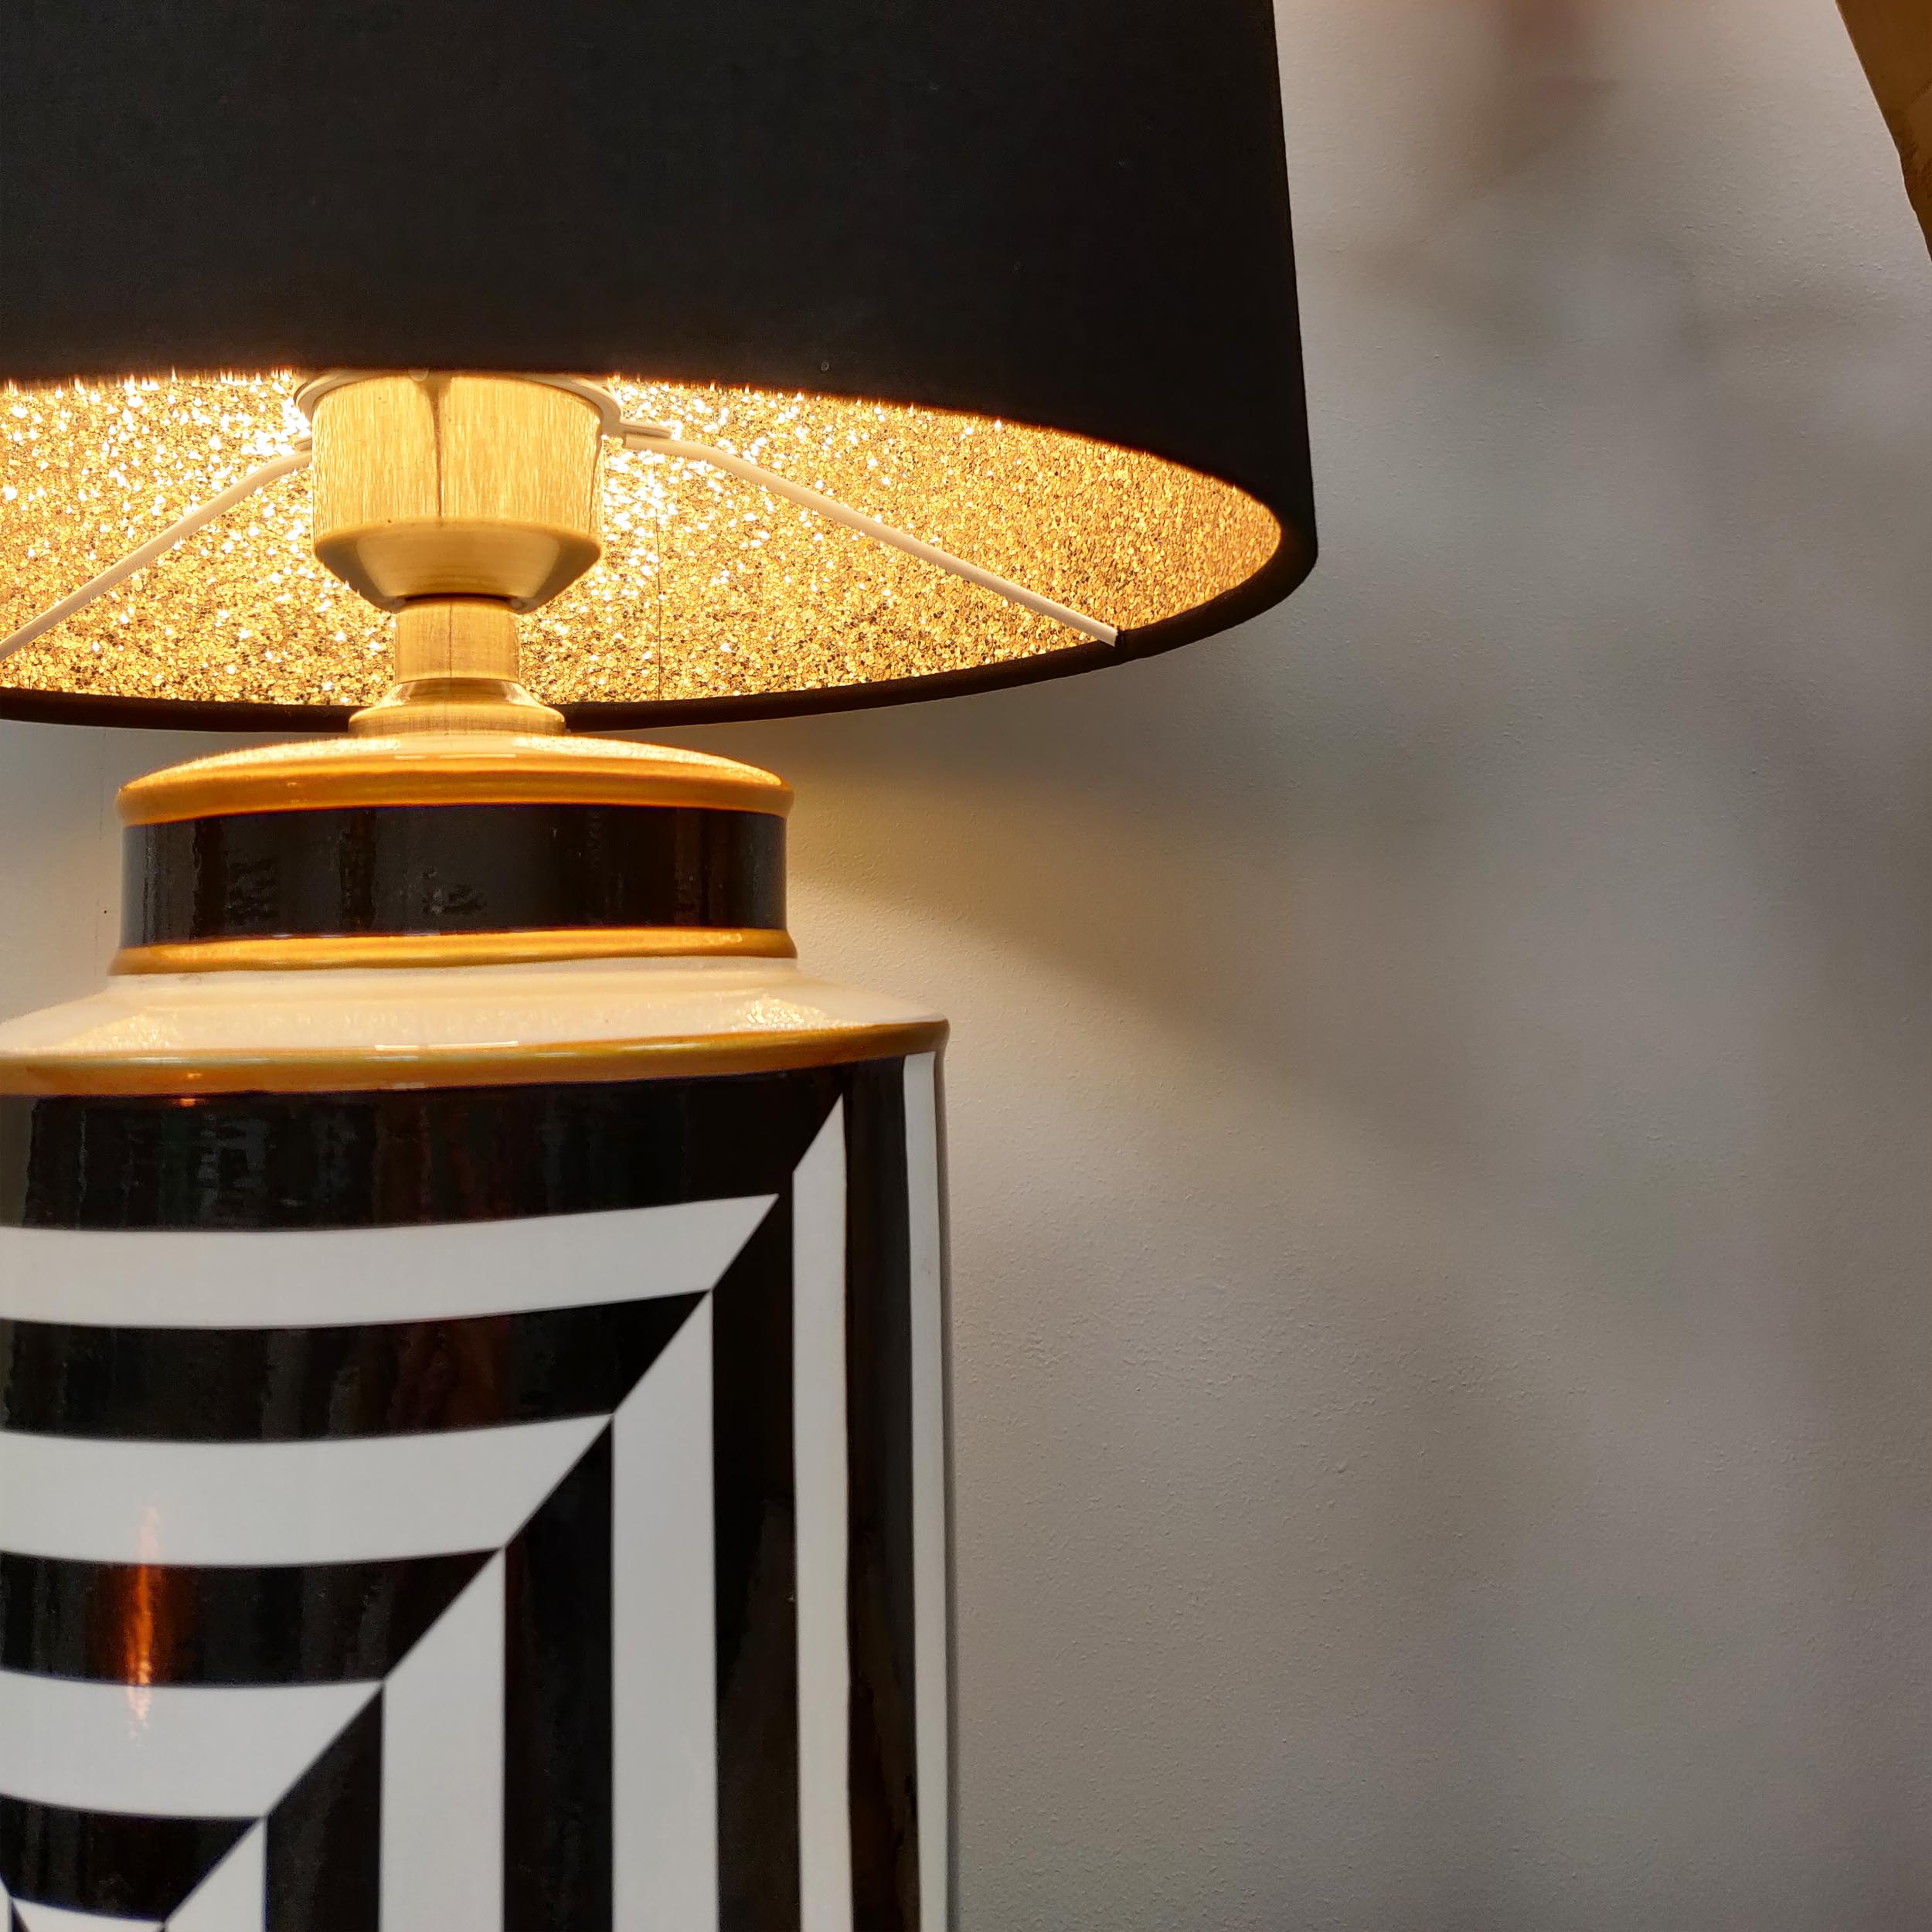 Monochrome Striped Table Lamp with Gold accents